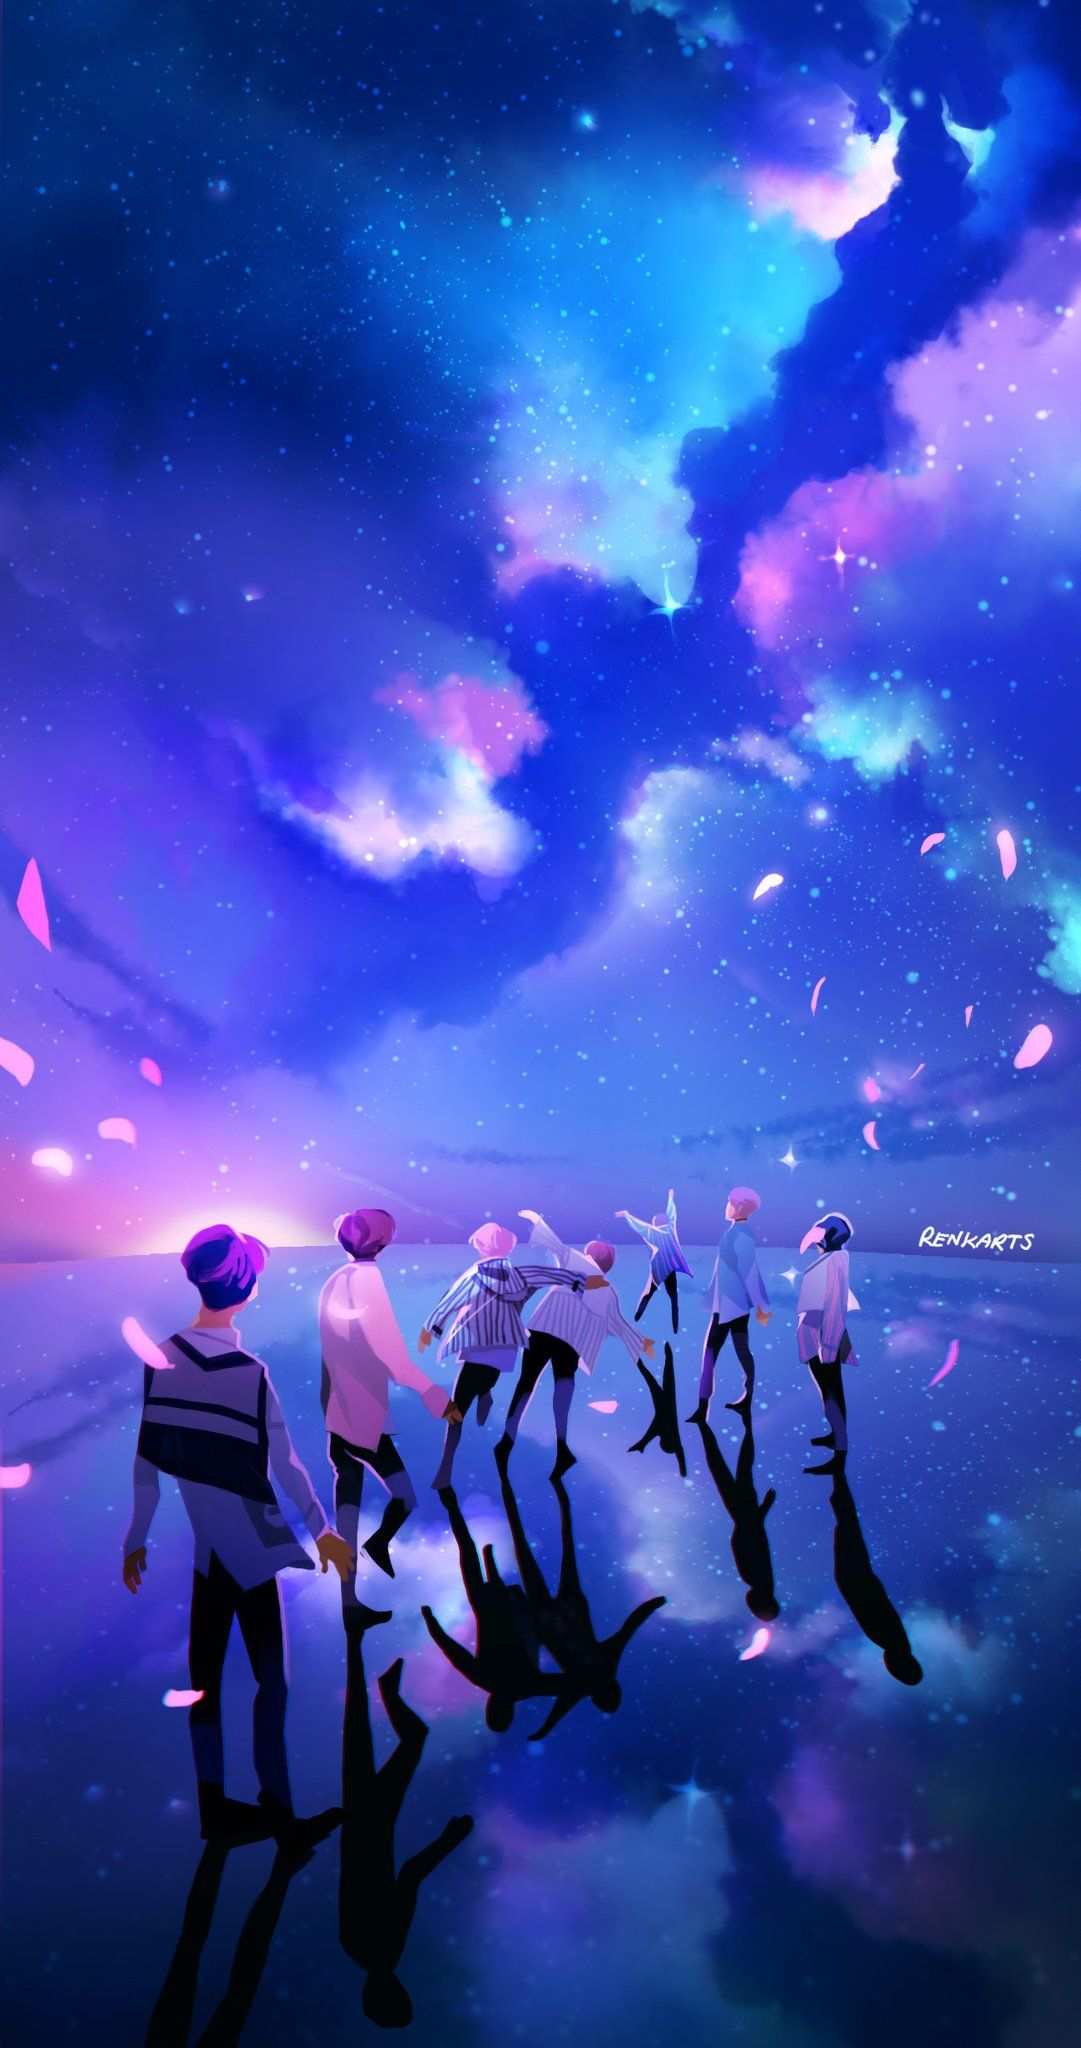 Bts Fan Art Wallpapers Top Free Bts Fan Art Backgrounds